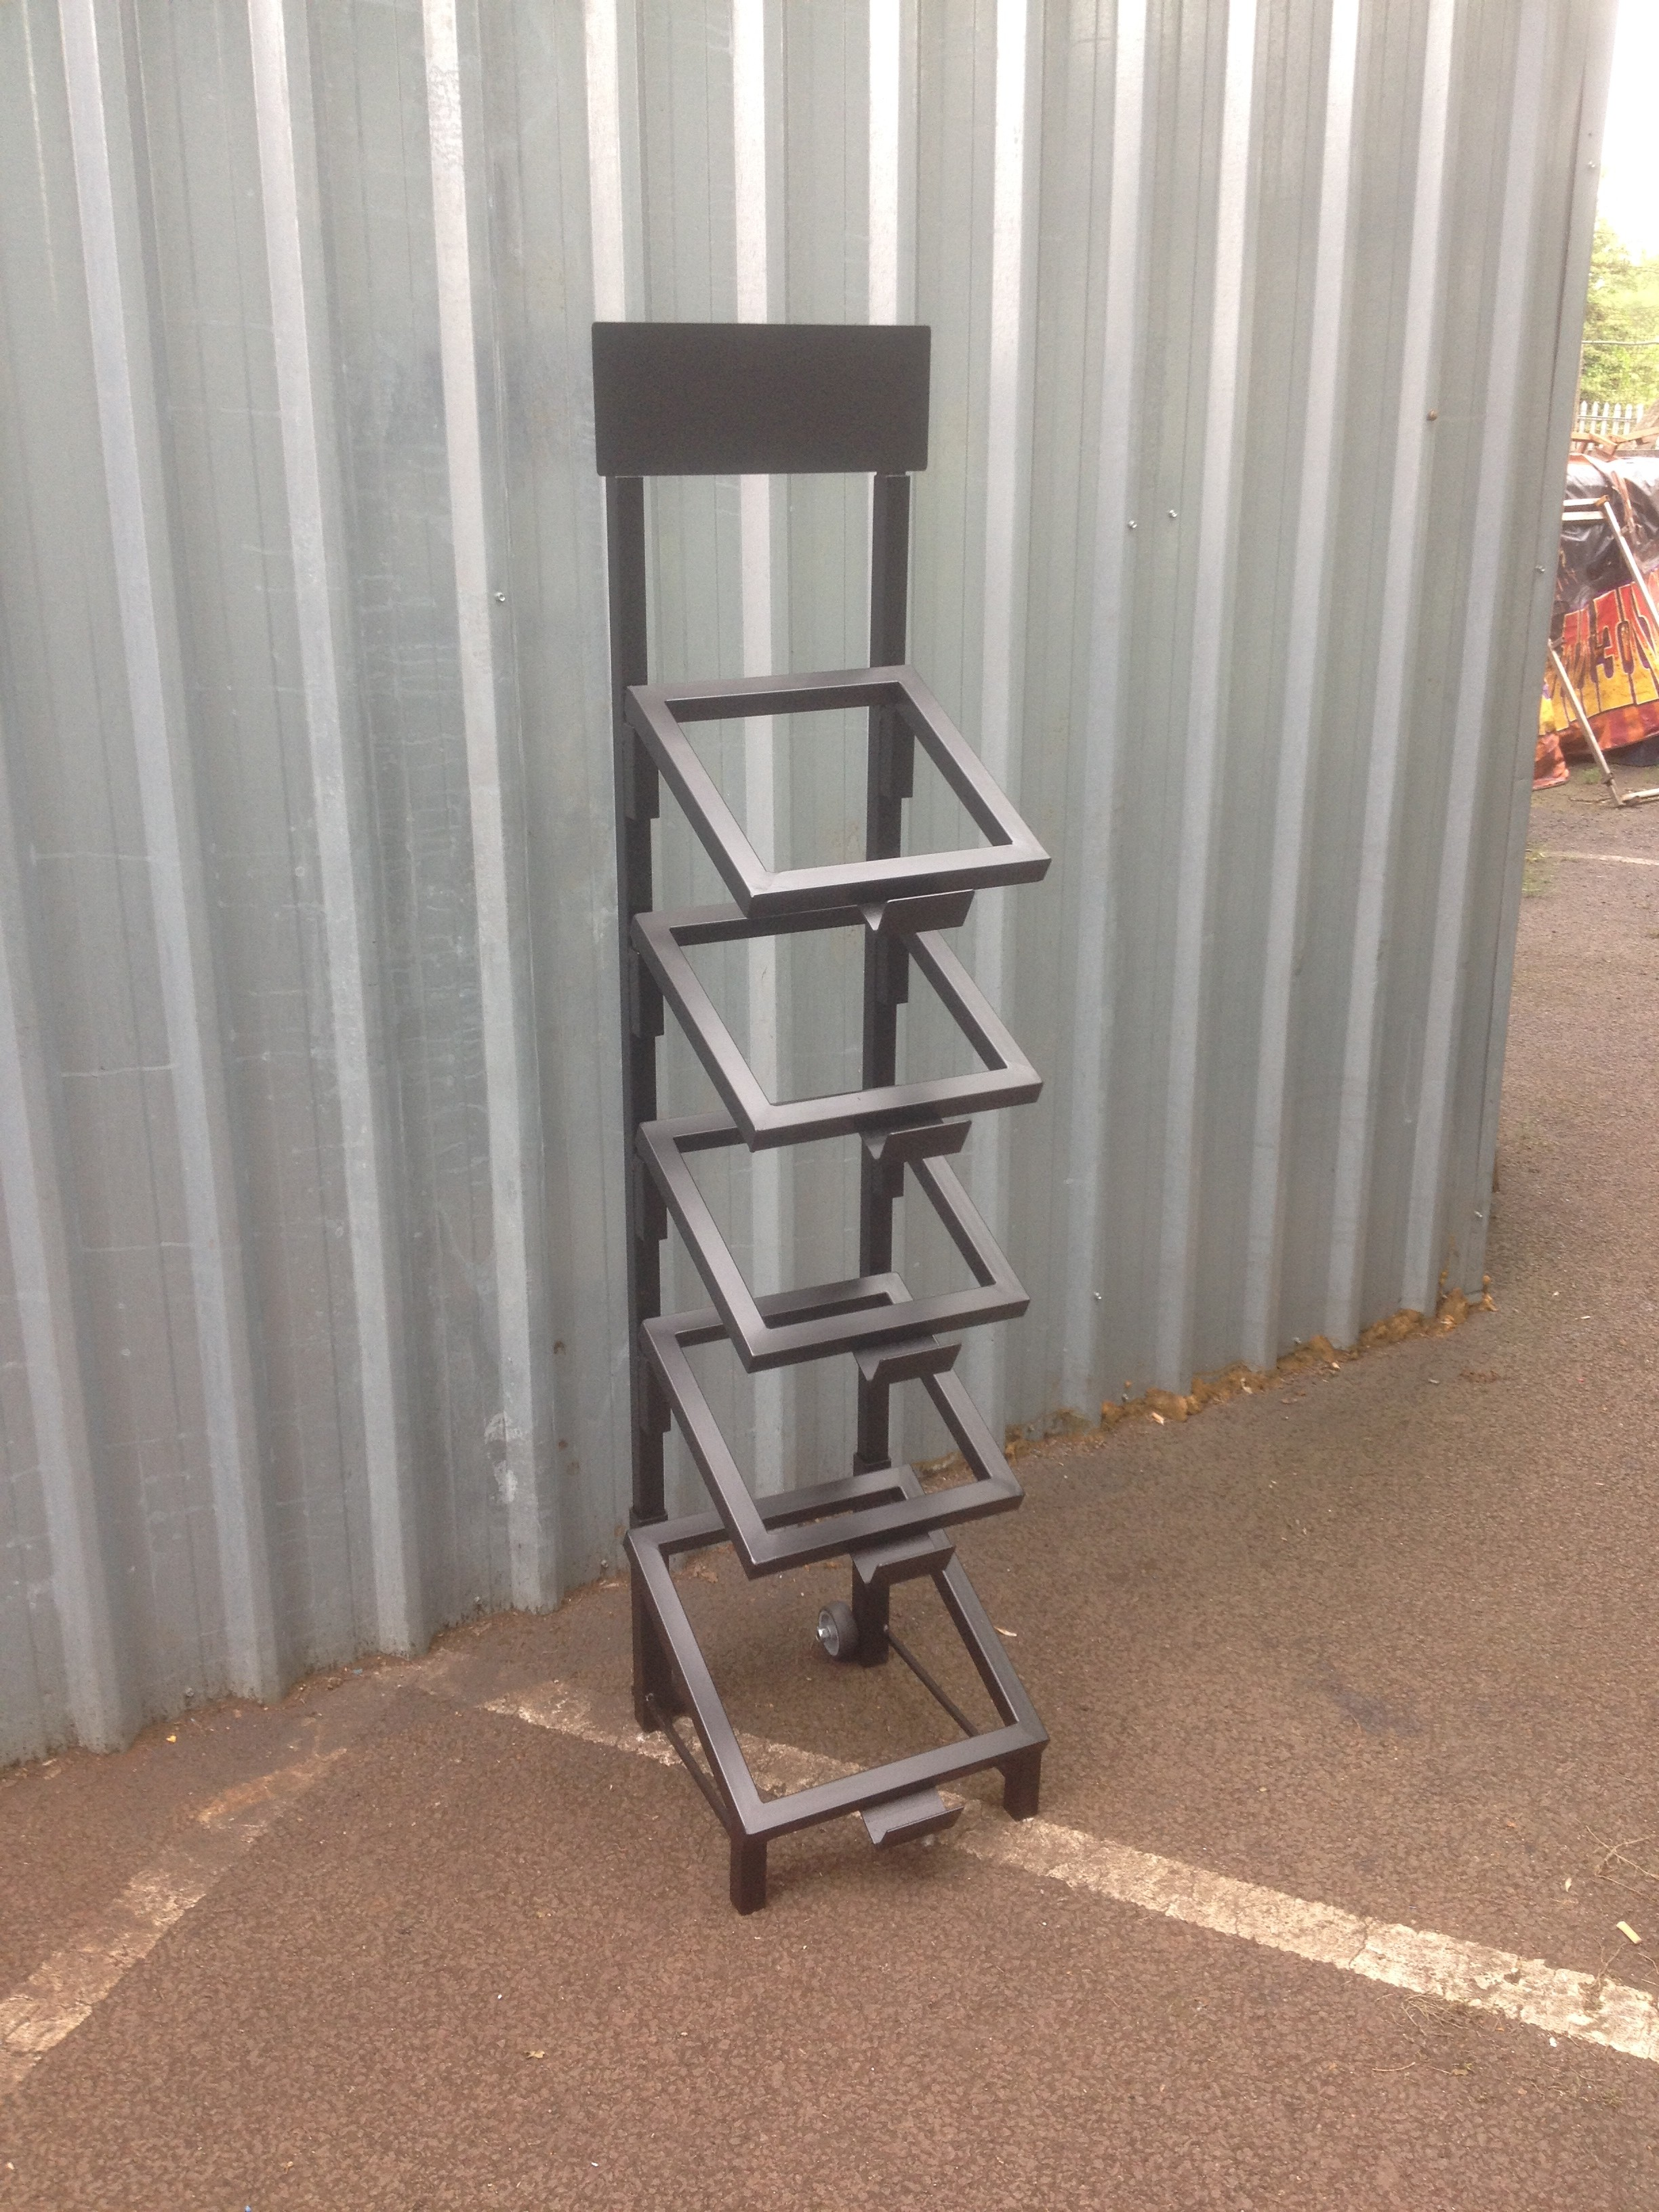 Sample Lecturn 5 Tier Uk Display Stands